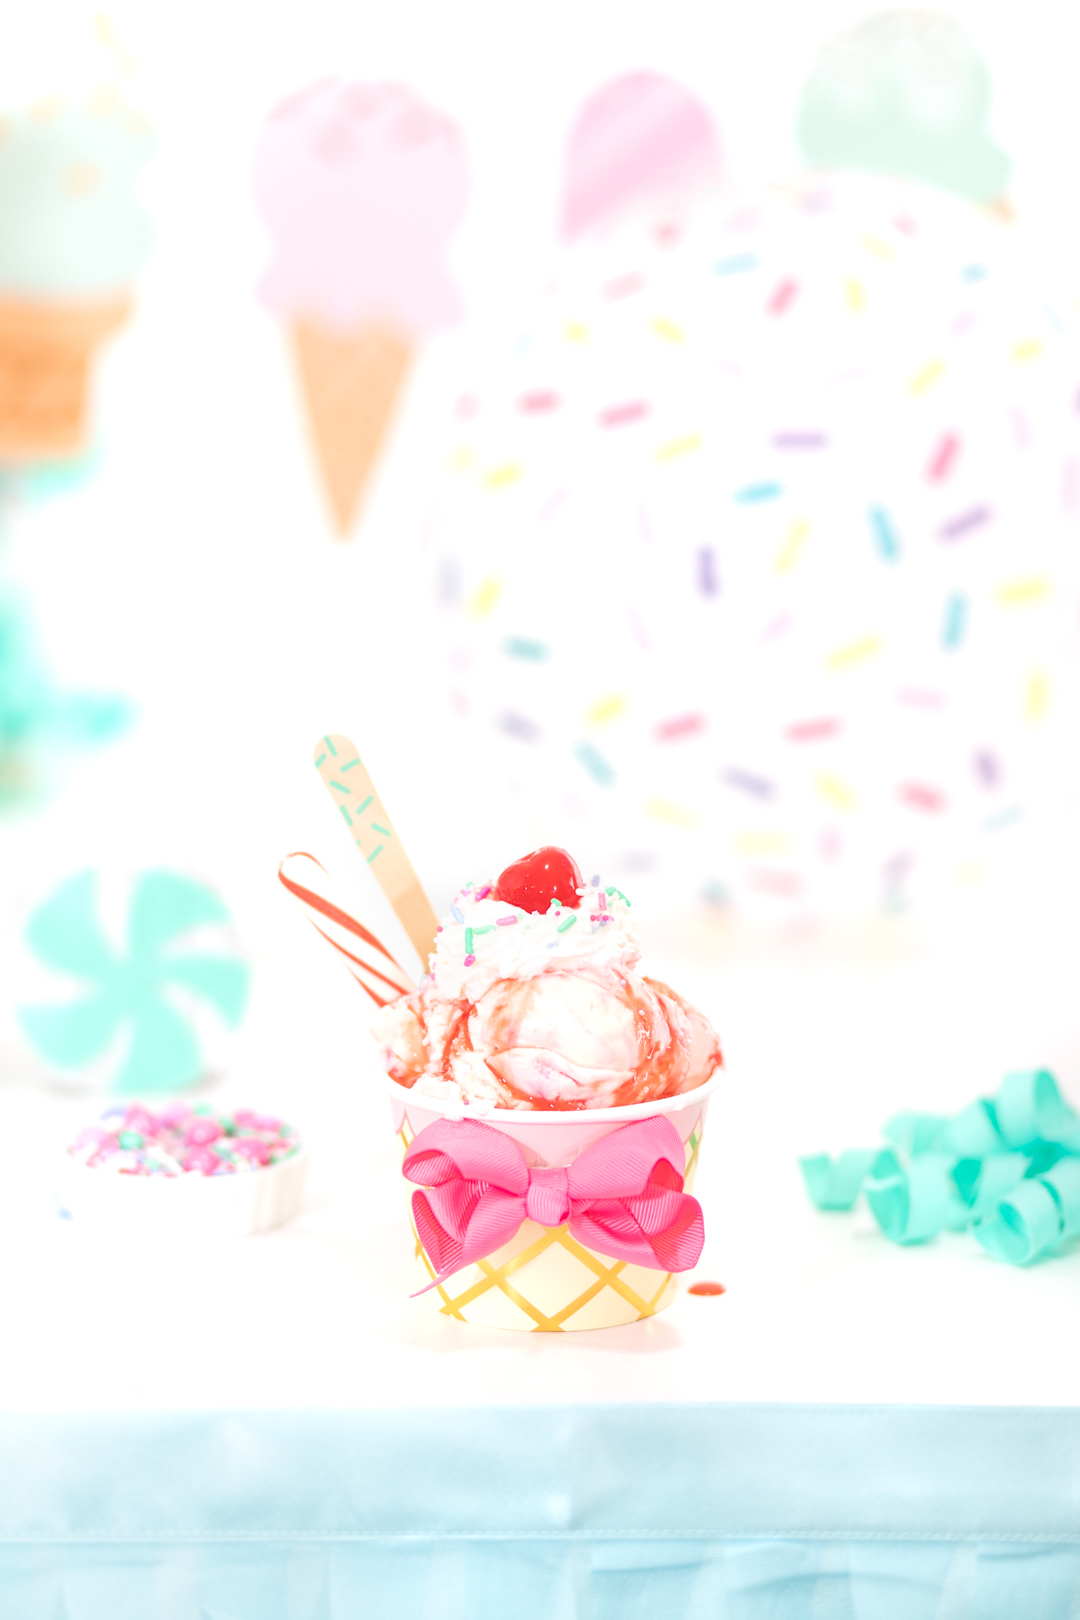 pretty ice cream sundae with candy cane and pink strawberry syrup